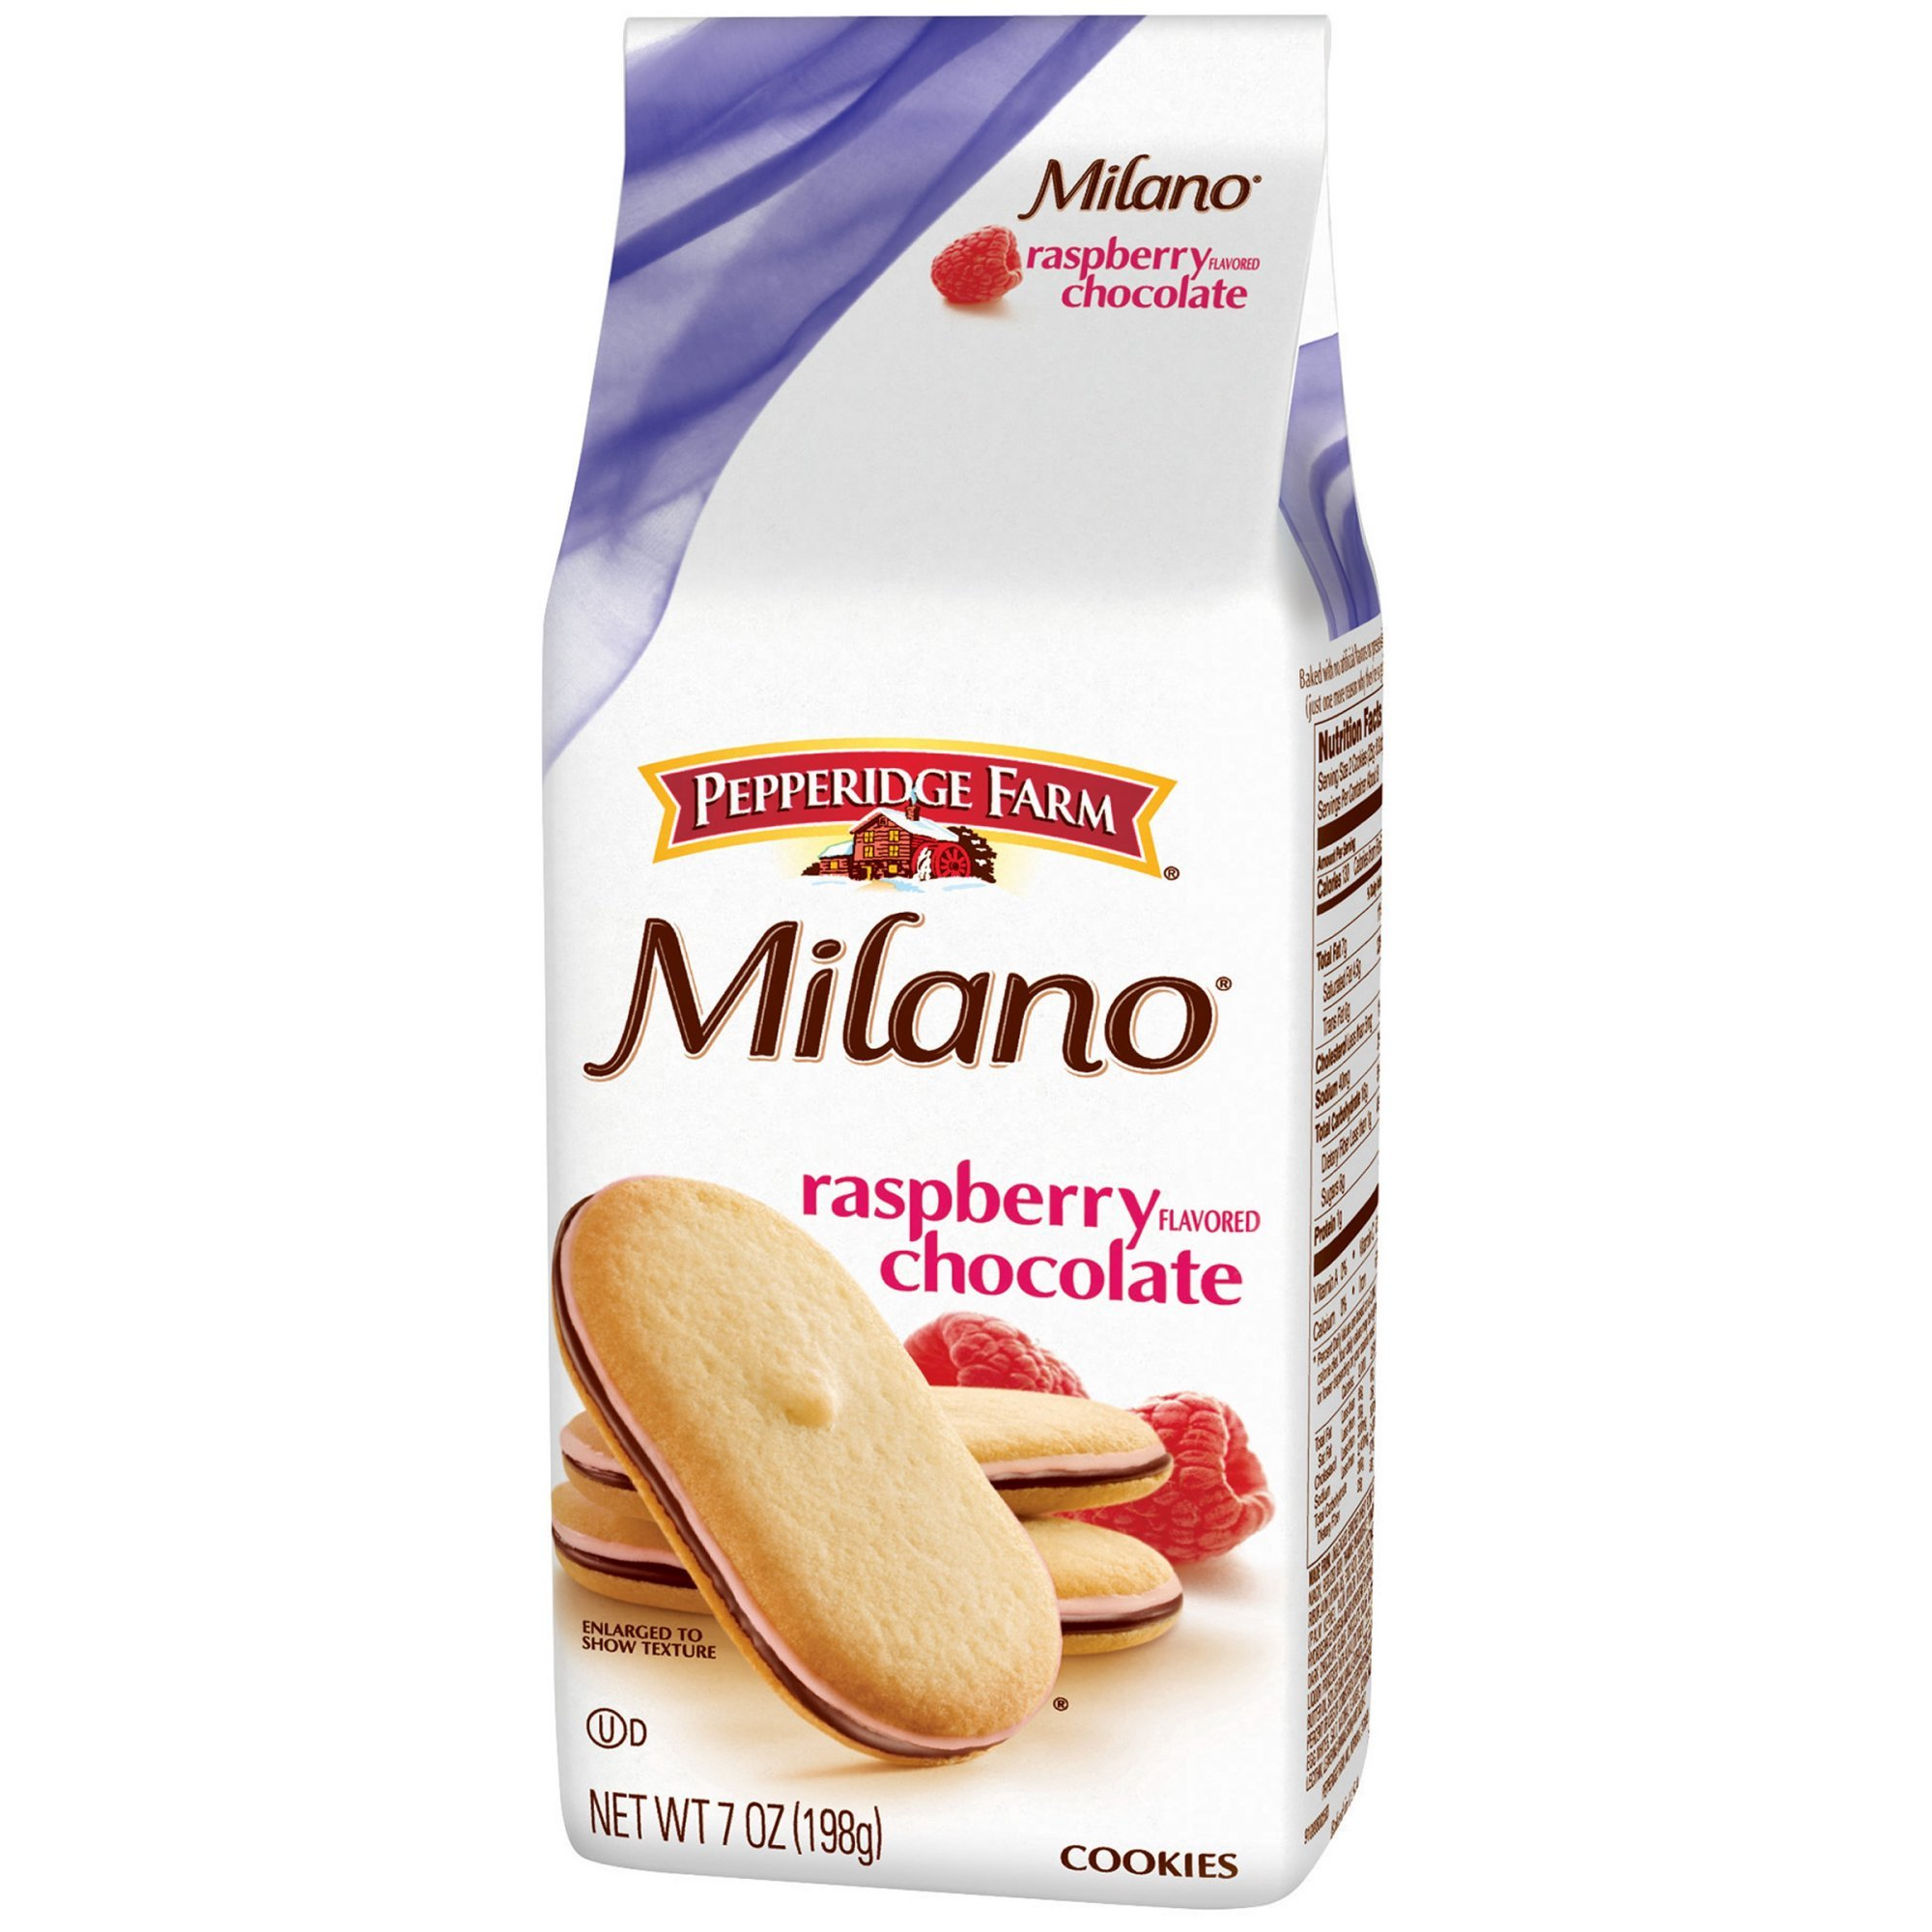 Pepperidge Farm Milano Raspberry Flavored Chocolate Cookies 7 oz (Pack of 2)